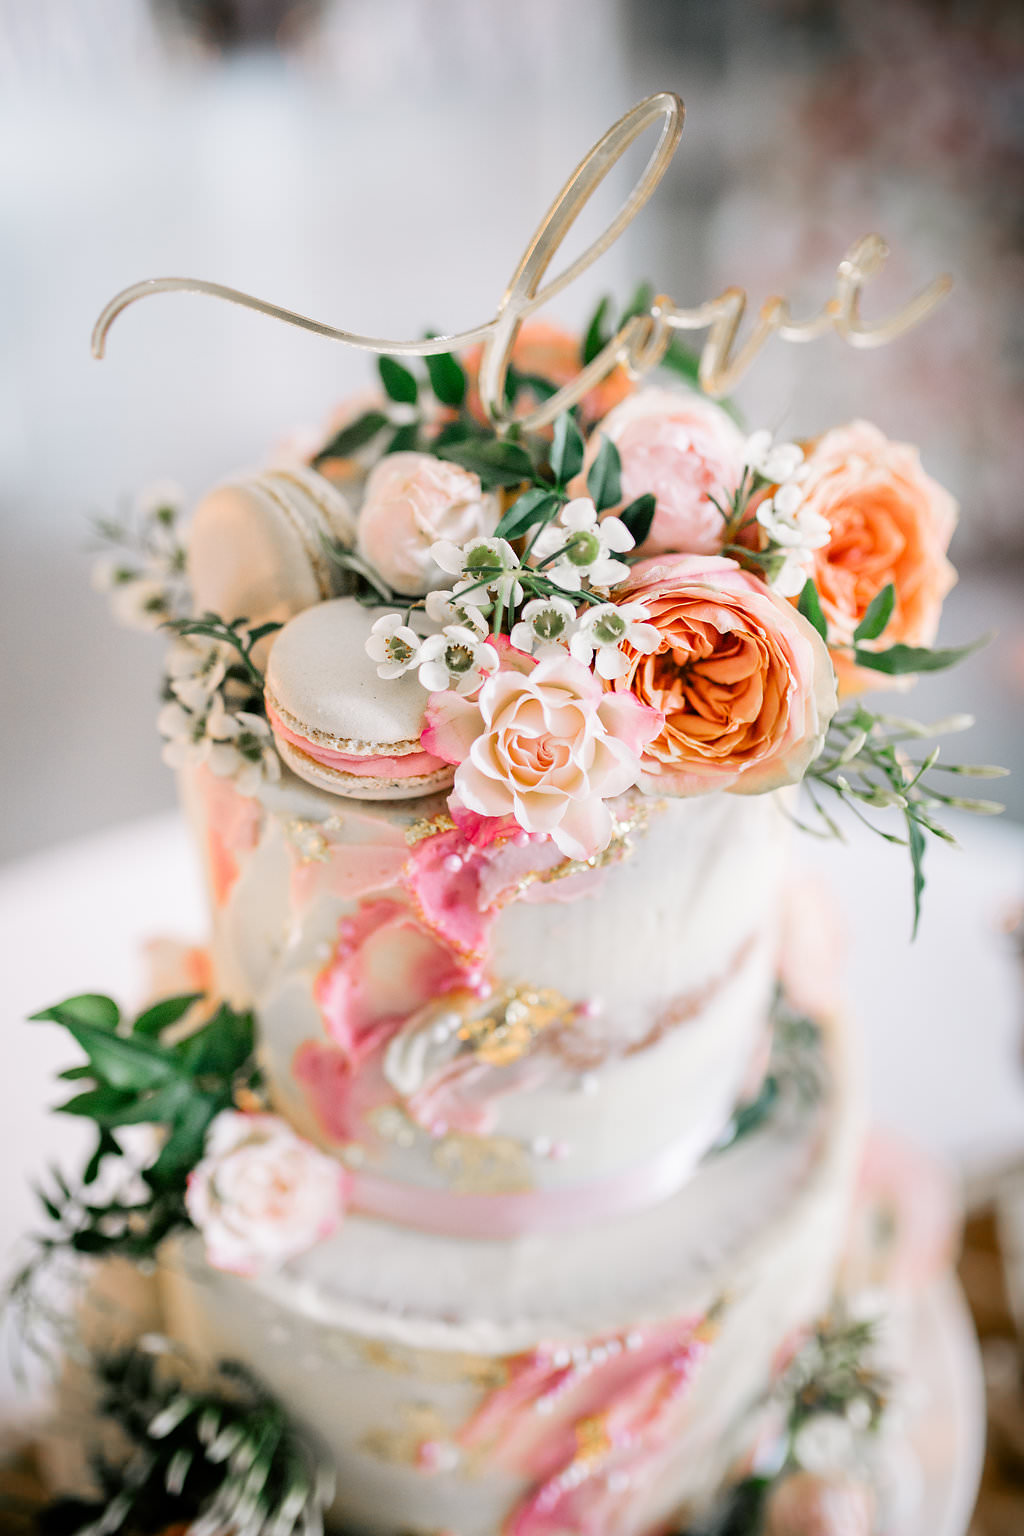 Cake Pink Artist Palette Painted Brush Work Gold Leaf Flowers Macarons Love Topper Lapstone Barn Wedding Ideas Cotswolds Katie Hamilton Photography